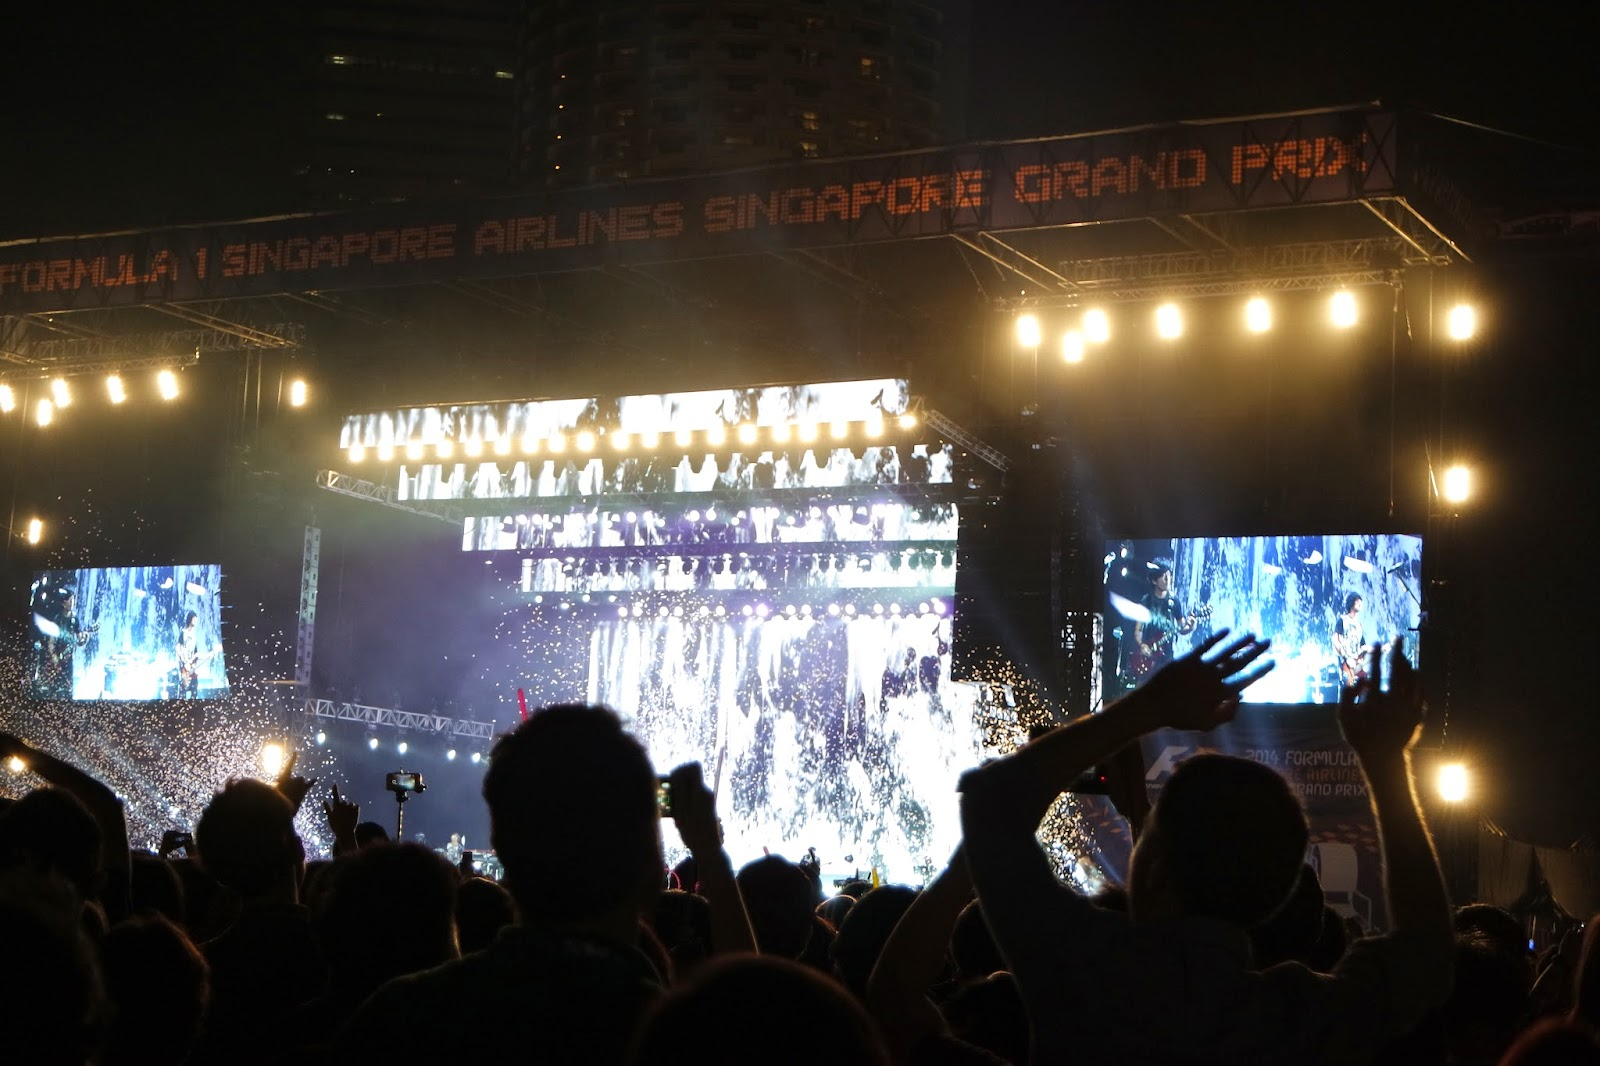 Mayday Singapore F1 2014 Grand Prix Concert